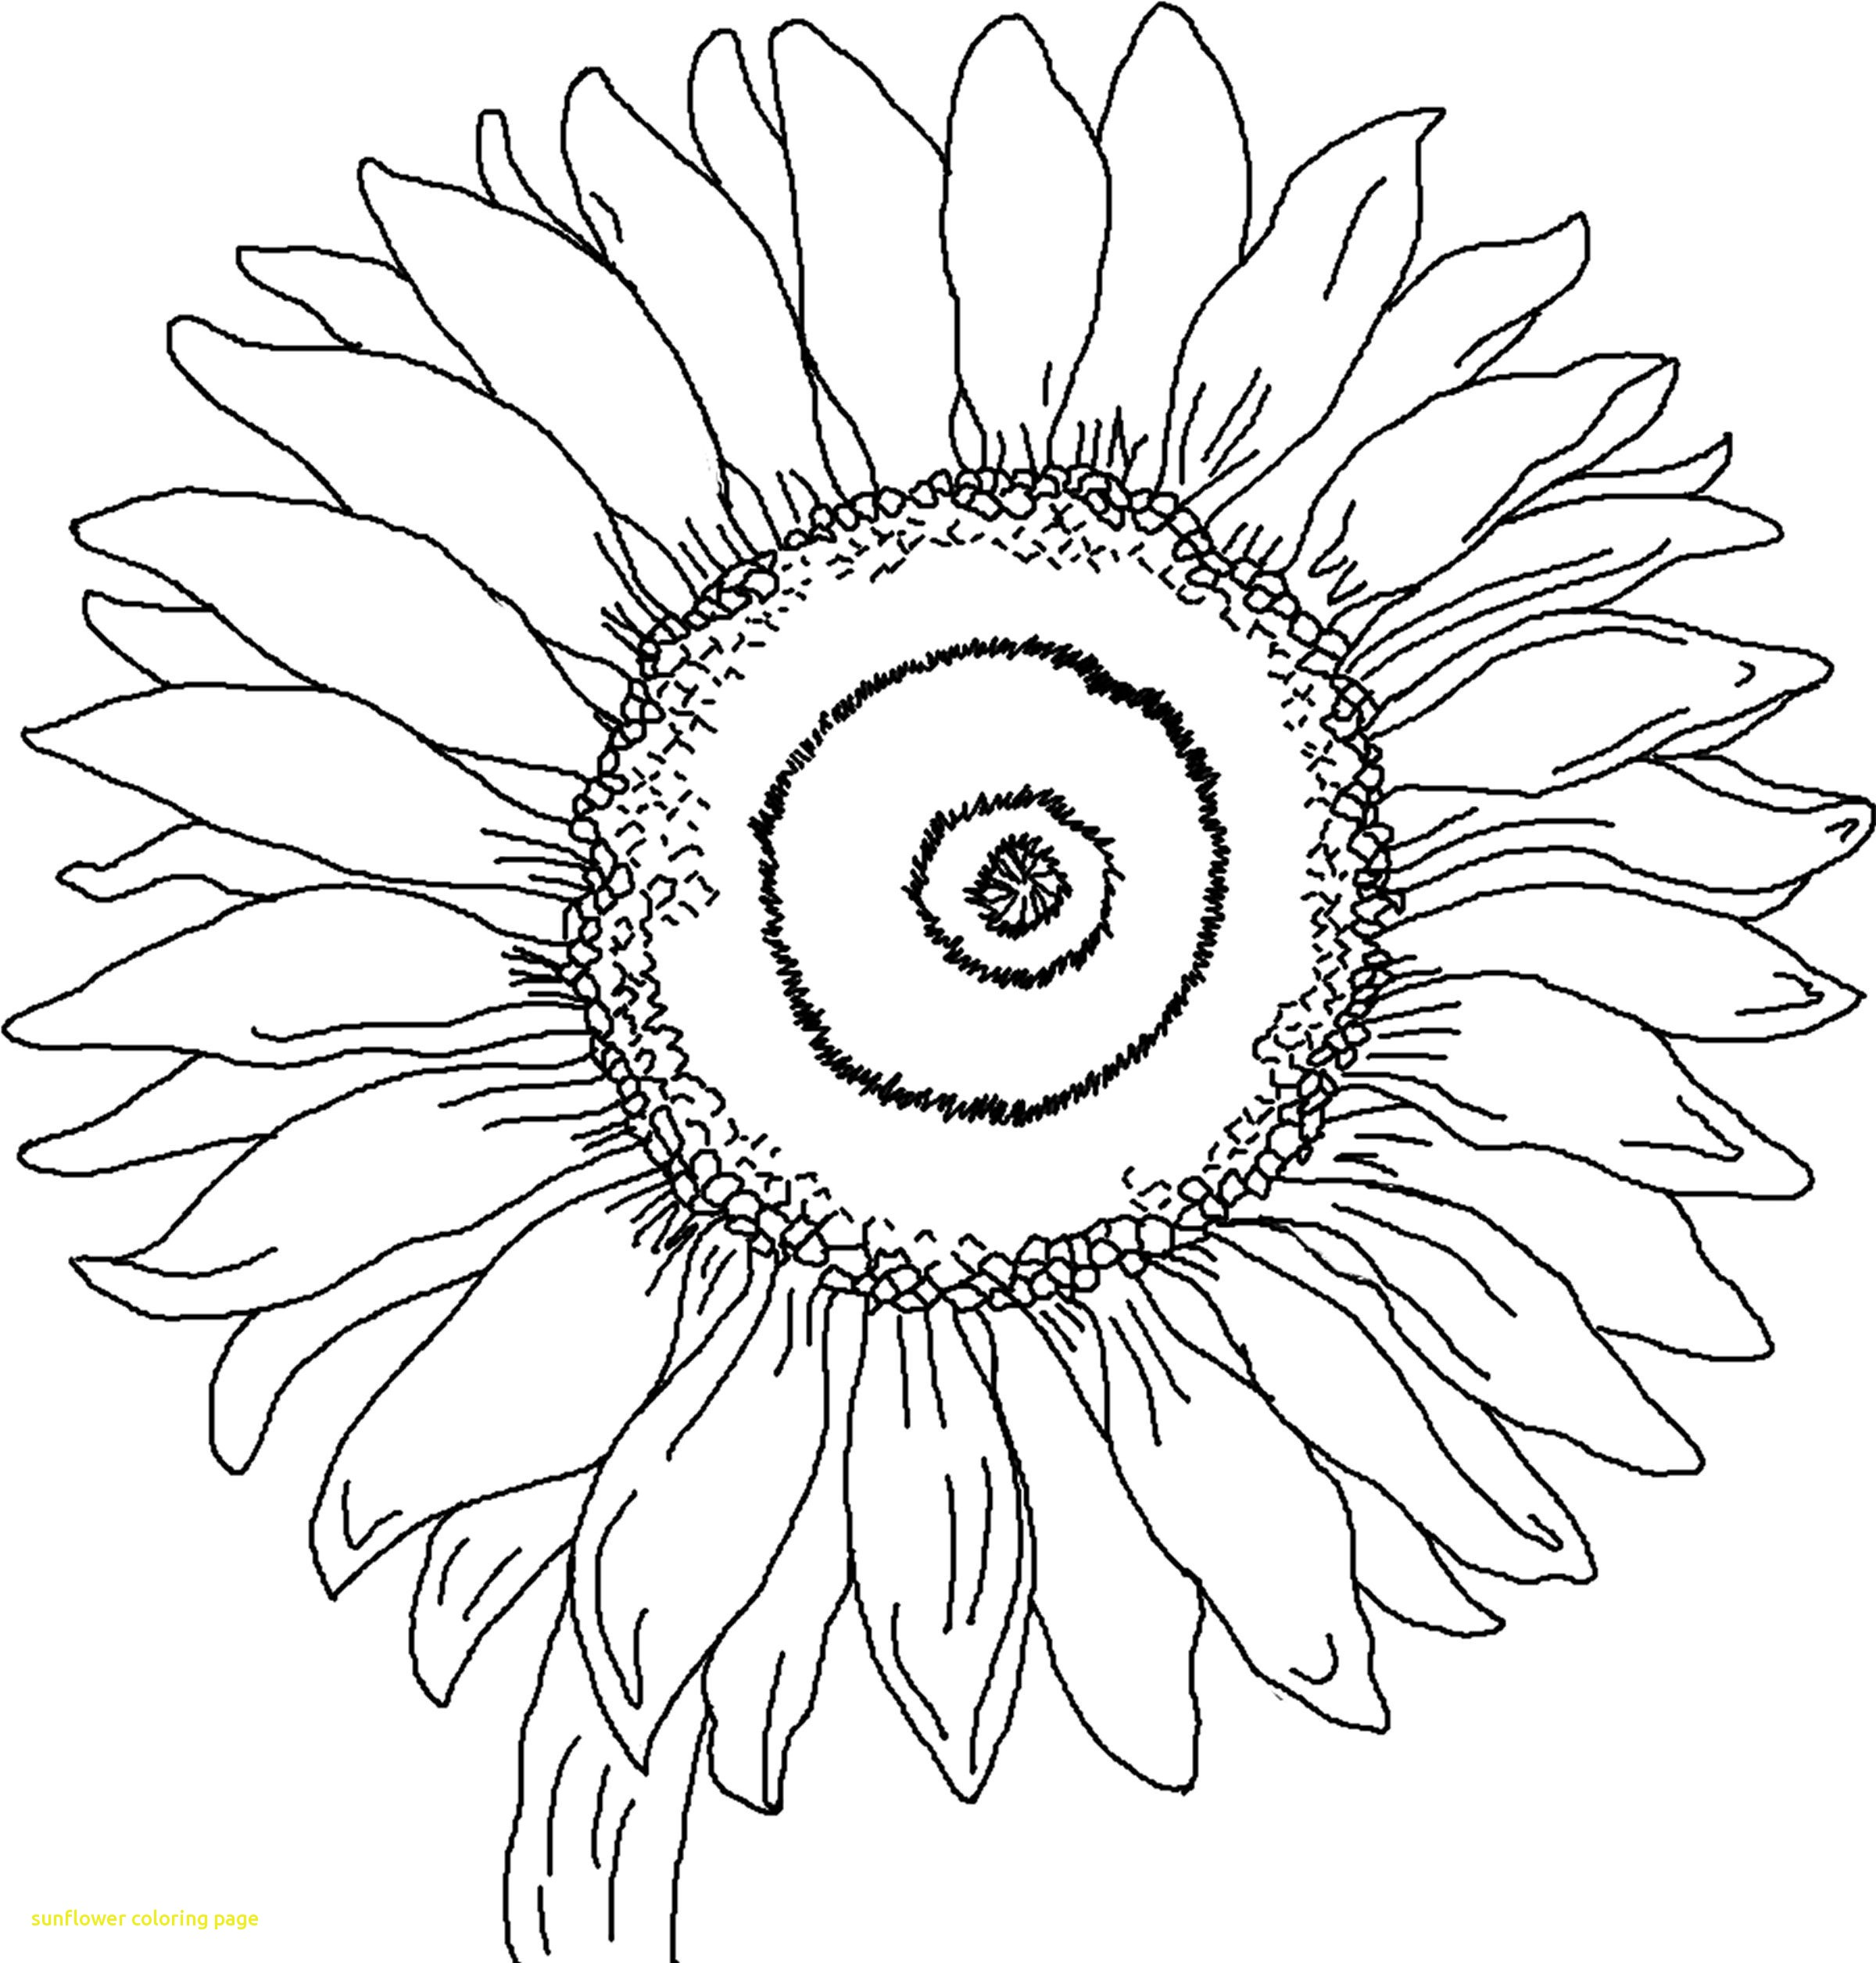 2400x2511 Sunflower Coloring Page With Free Printable Sunflower Coloring